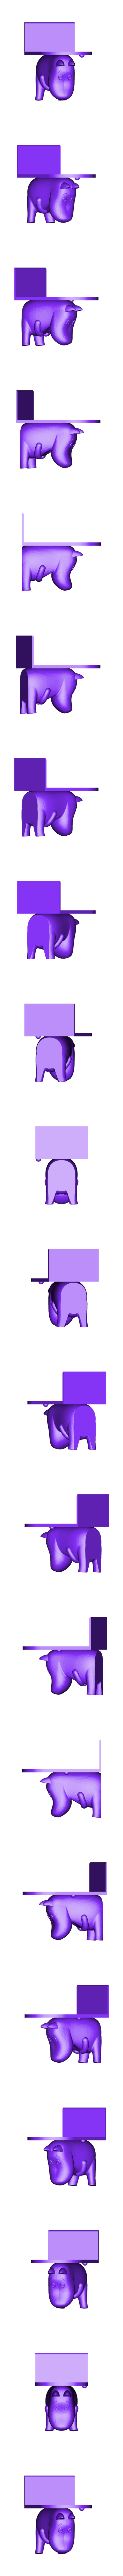 Moomin_Bookend_V2-NOTEXT.stl Download free STL file Moomin bookend • 3D printable template, FrankLumien